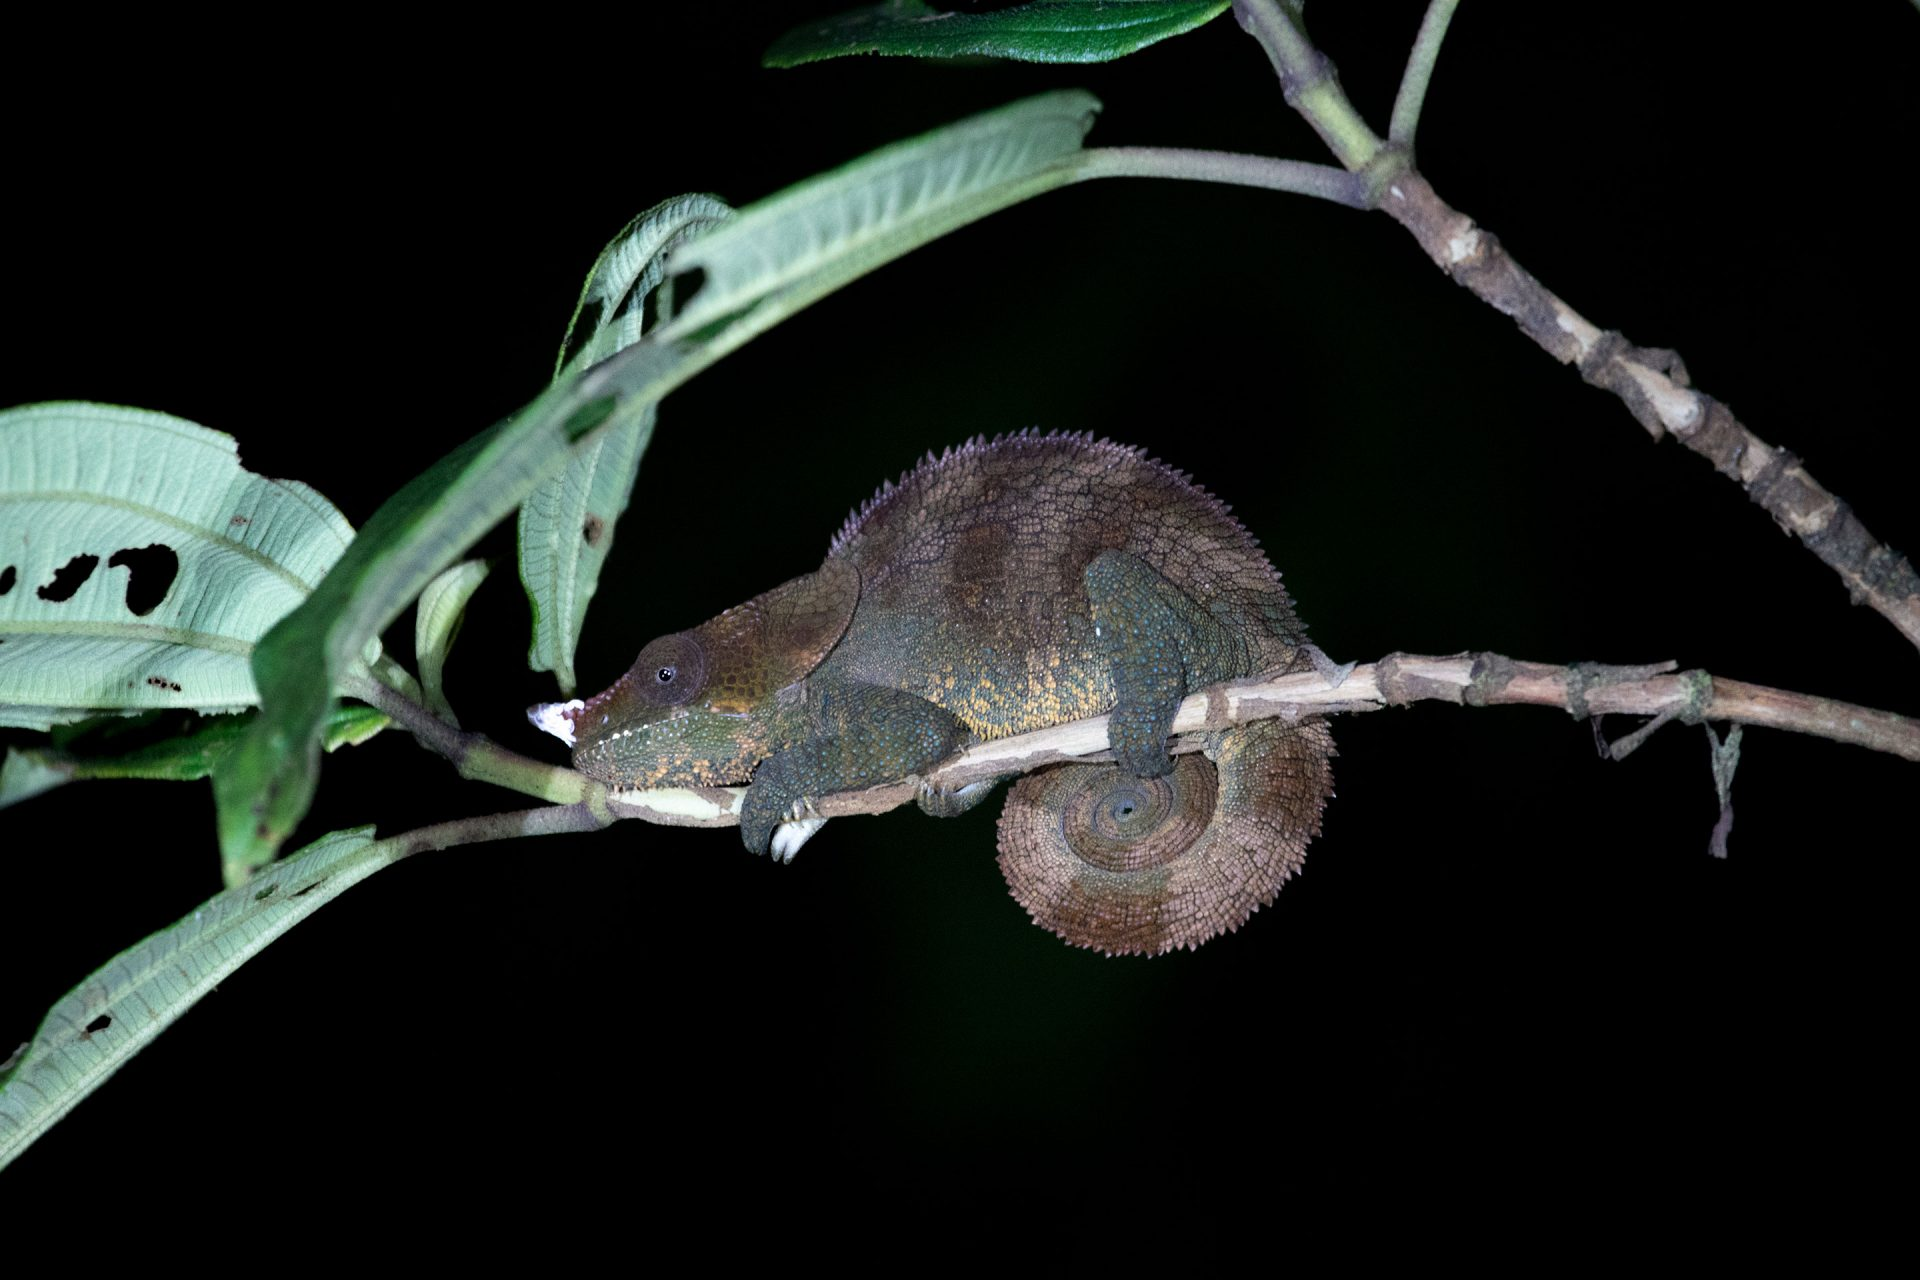 Cryptic Chameleon